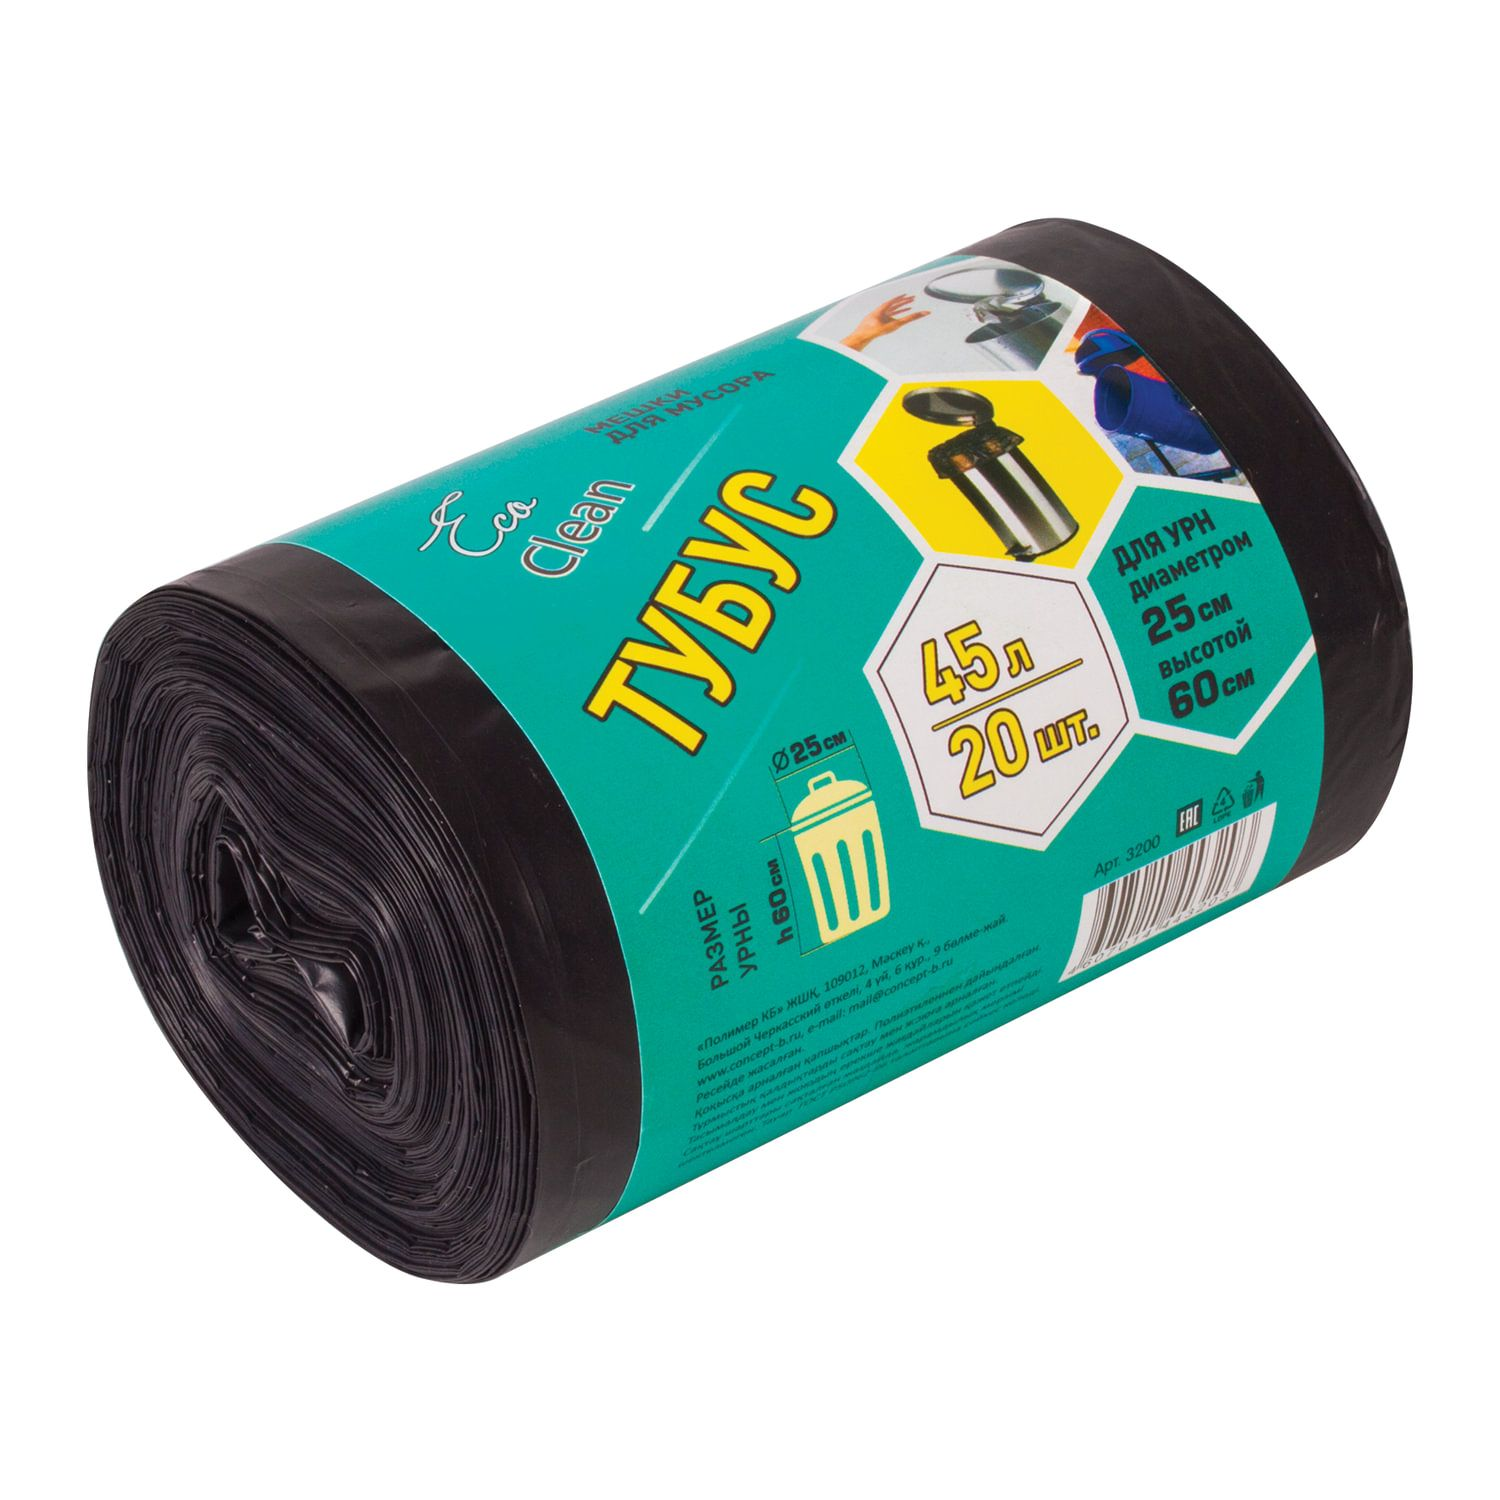 "CONCEPT OF HOUSEHOLD / Garbage bags 45 l ""Tubus"", black, 20 pcs per roll, LDPE, 25 microns, 42x90 cm, for urns, d - 24, h - 66"